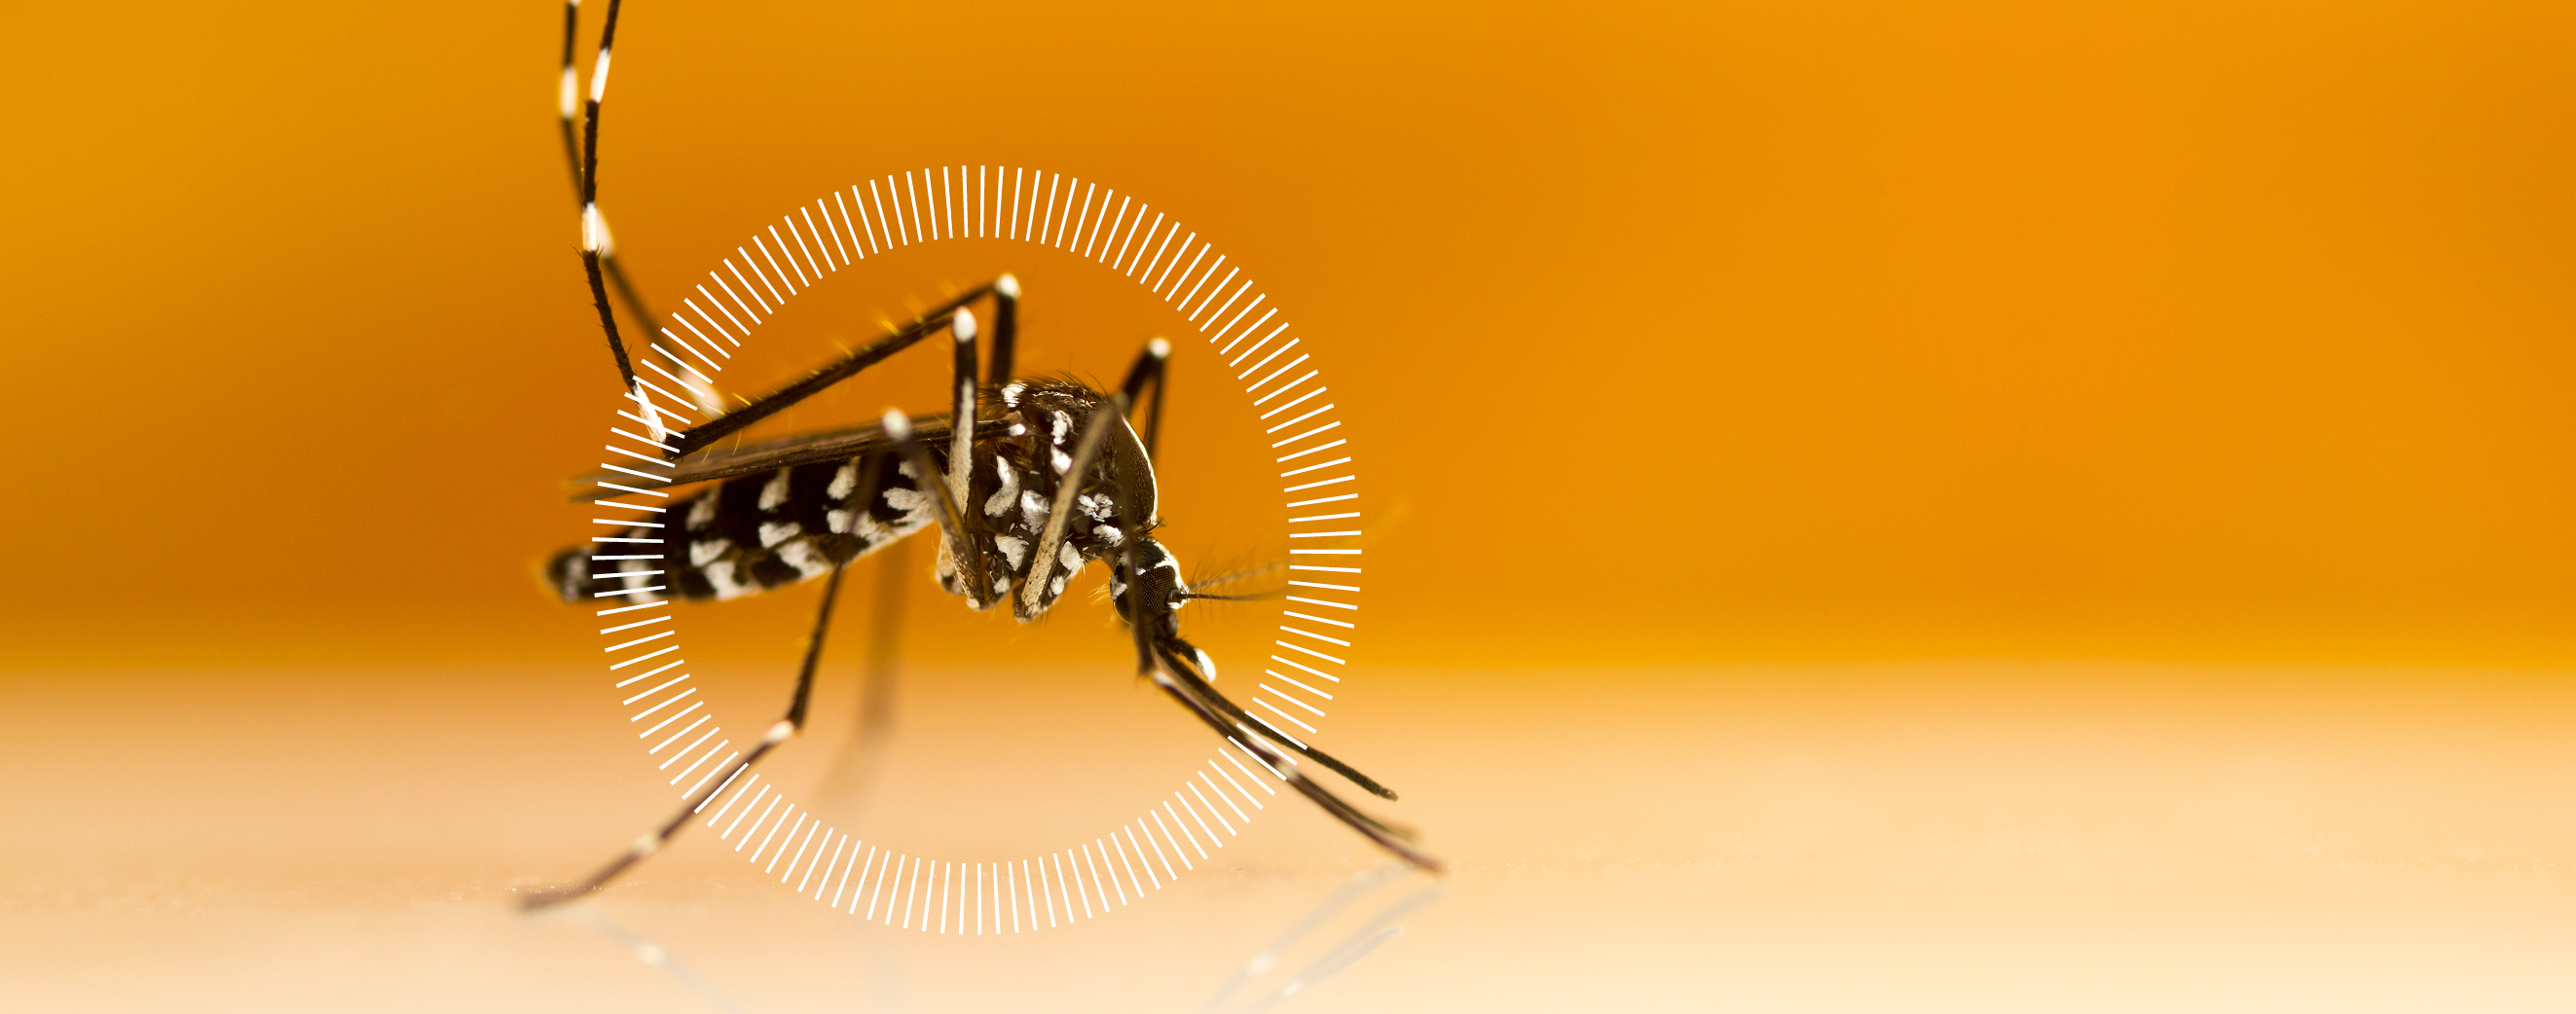 Mosquito Biology and Behavior